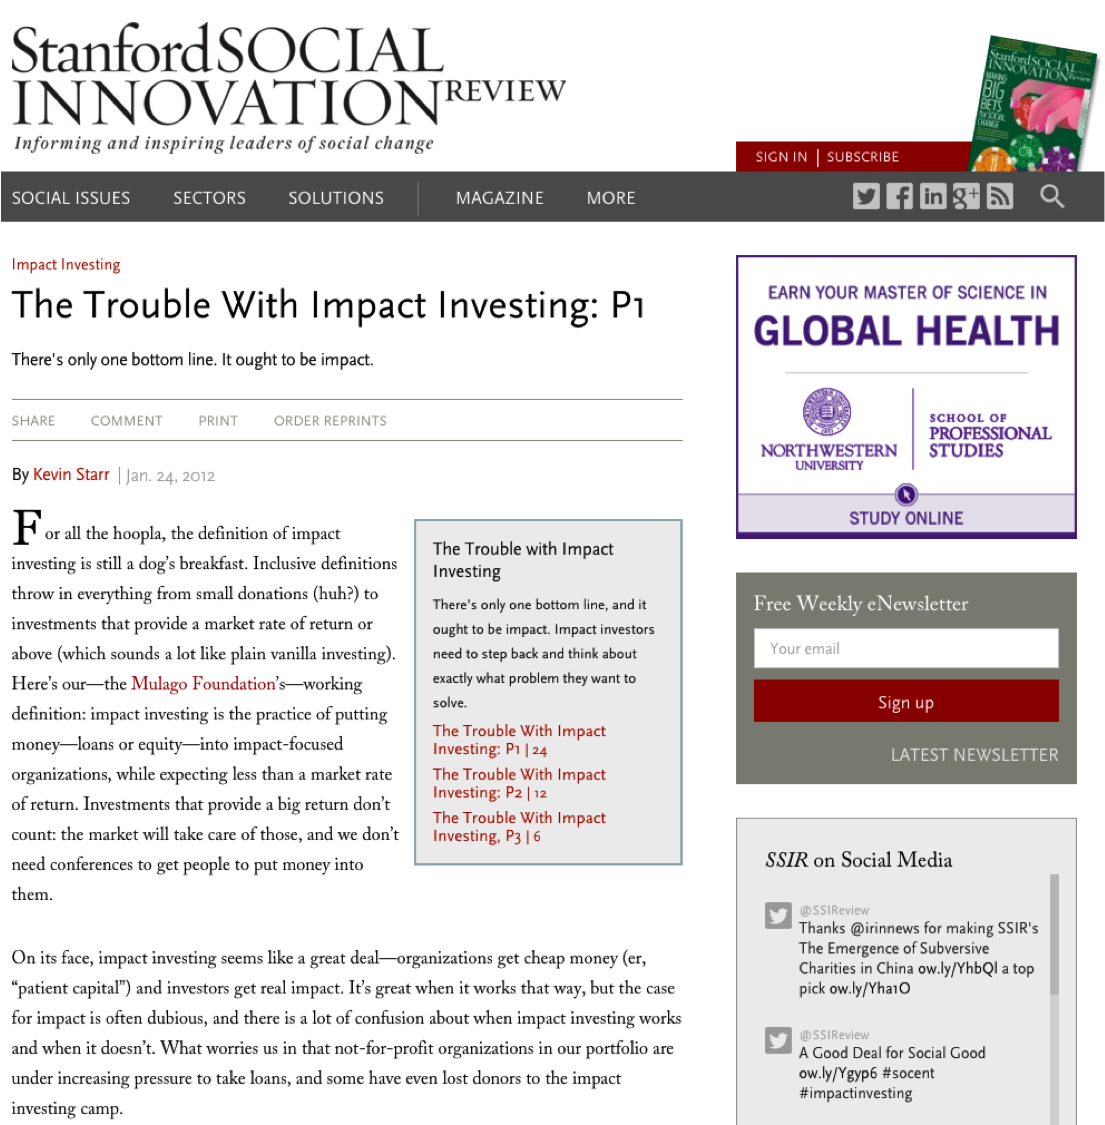 The Problems With Impact Investing... Revisited